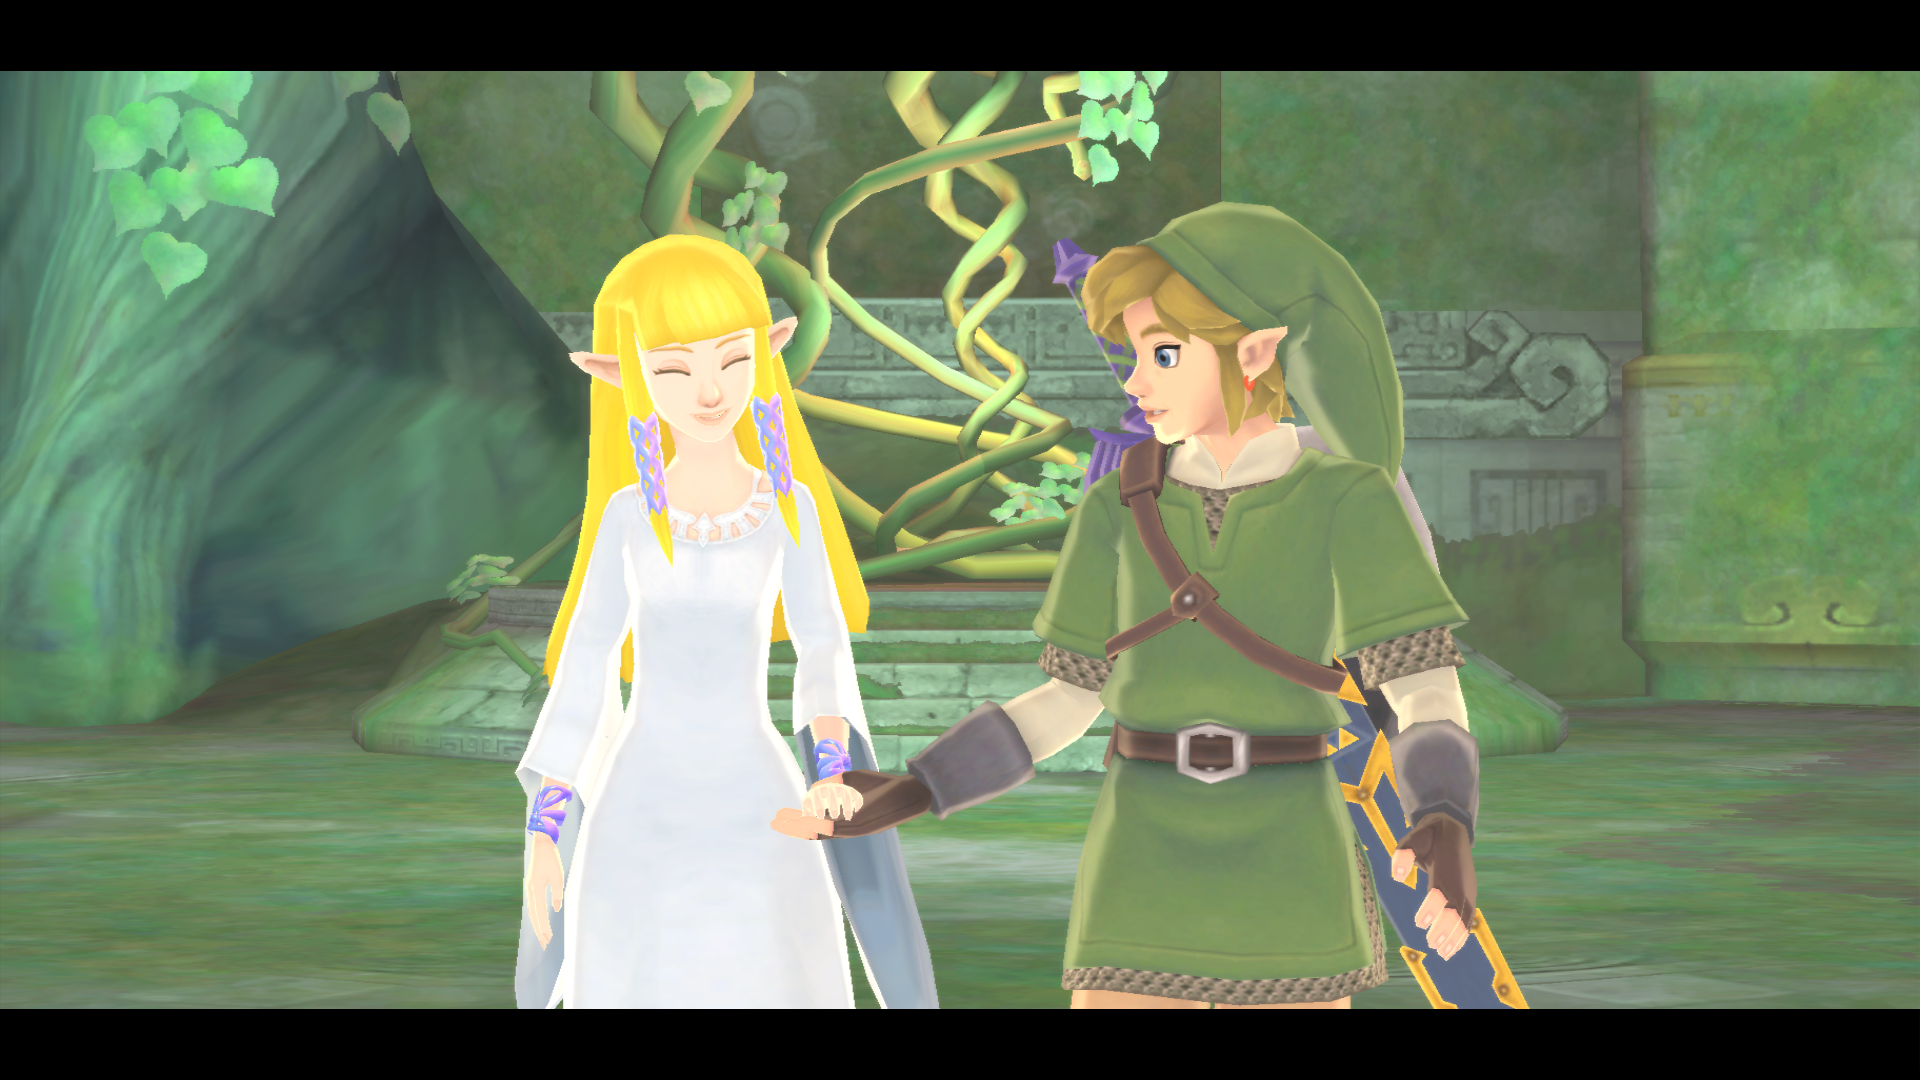 Skyward Sword walkthrough - Hylia Domain and Final battle